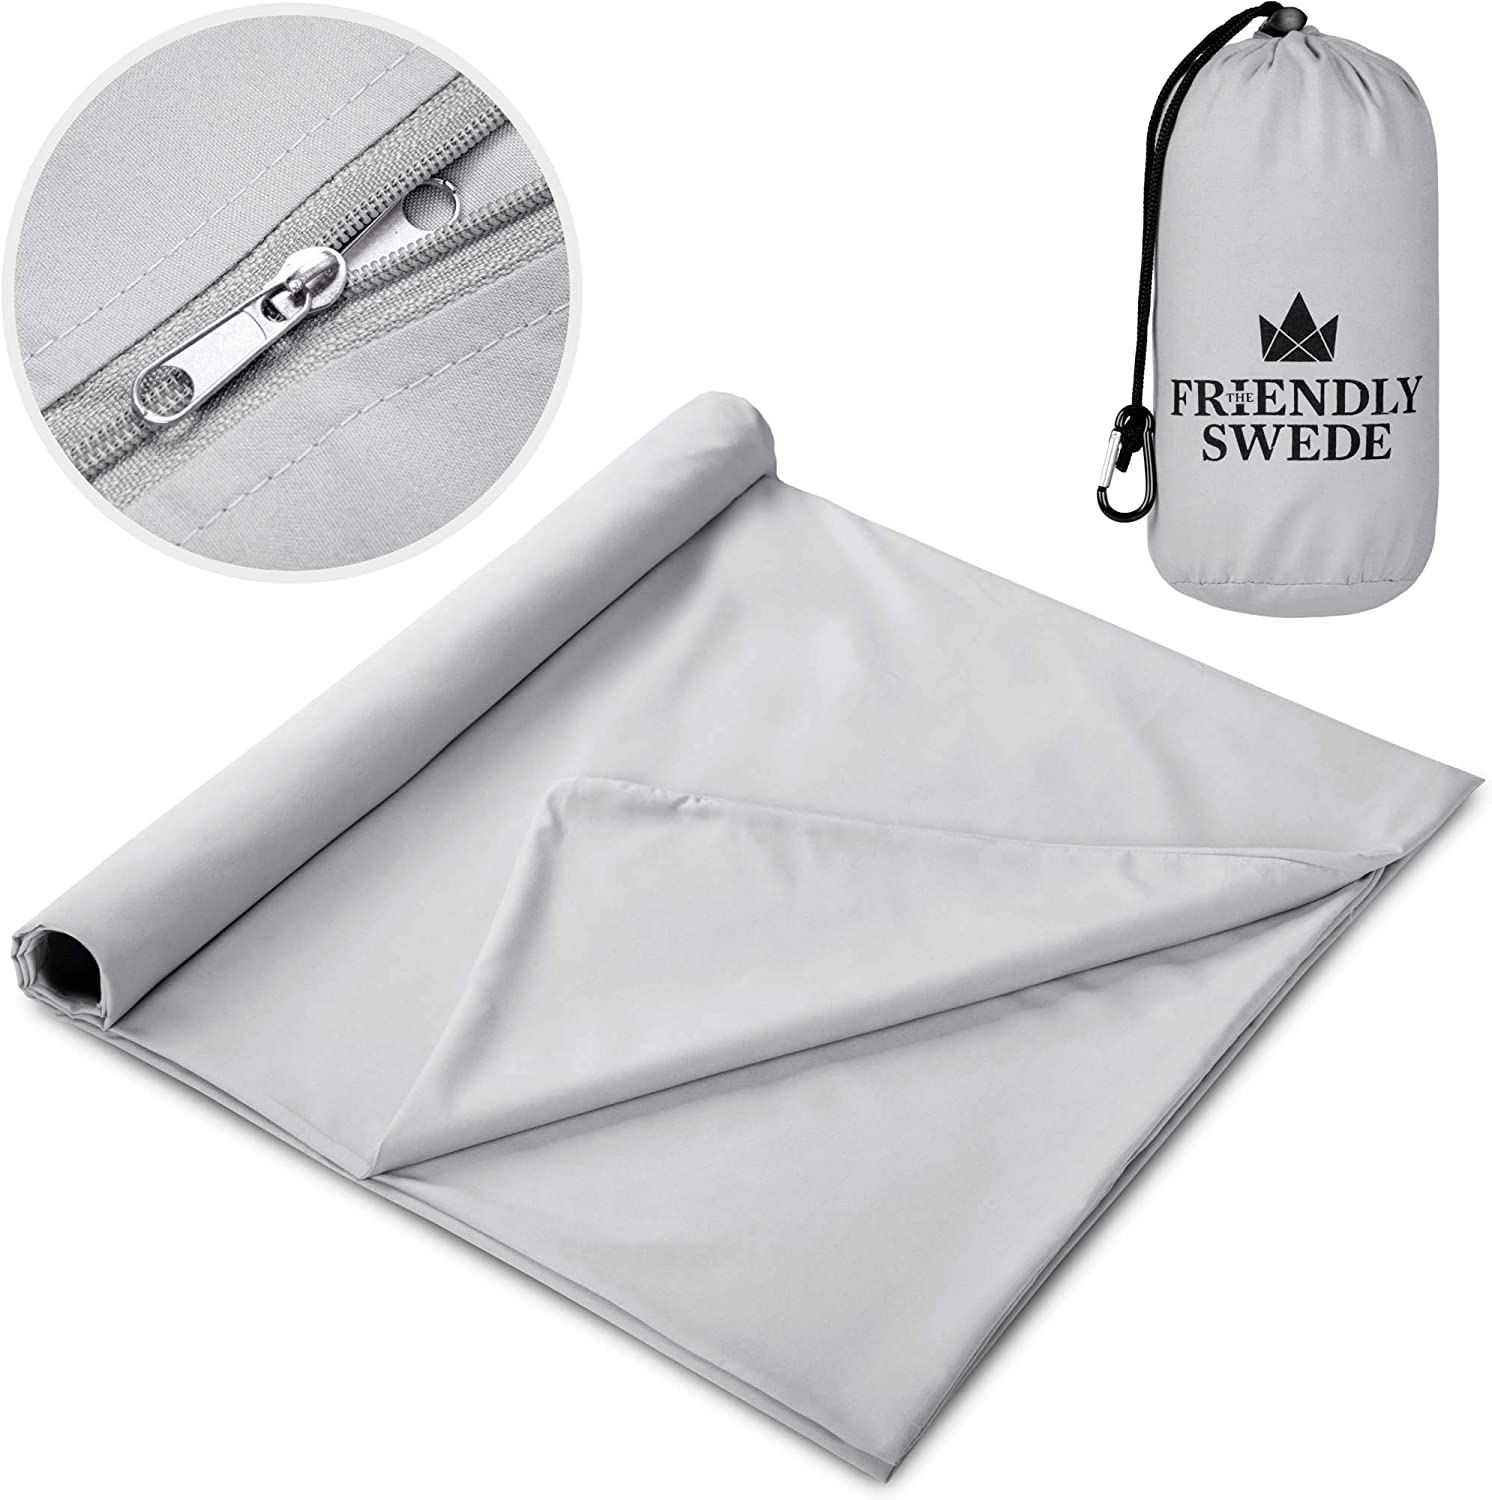 The Friendly Swede Sleeping Bag Liner – Travel and Camping Sheet, Pocket-Size, Ultra Lightweight, Silky Smooth Cool or Cotton Soft Warm Microfiber with Stuff Sack